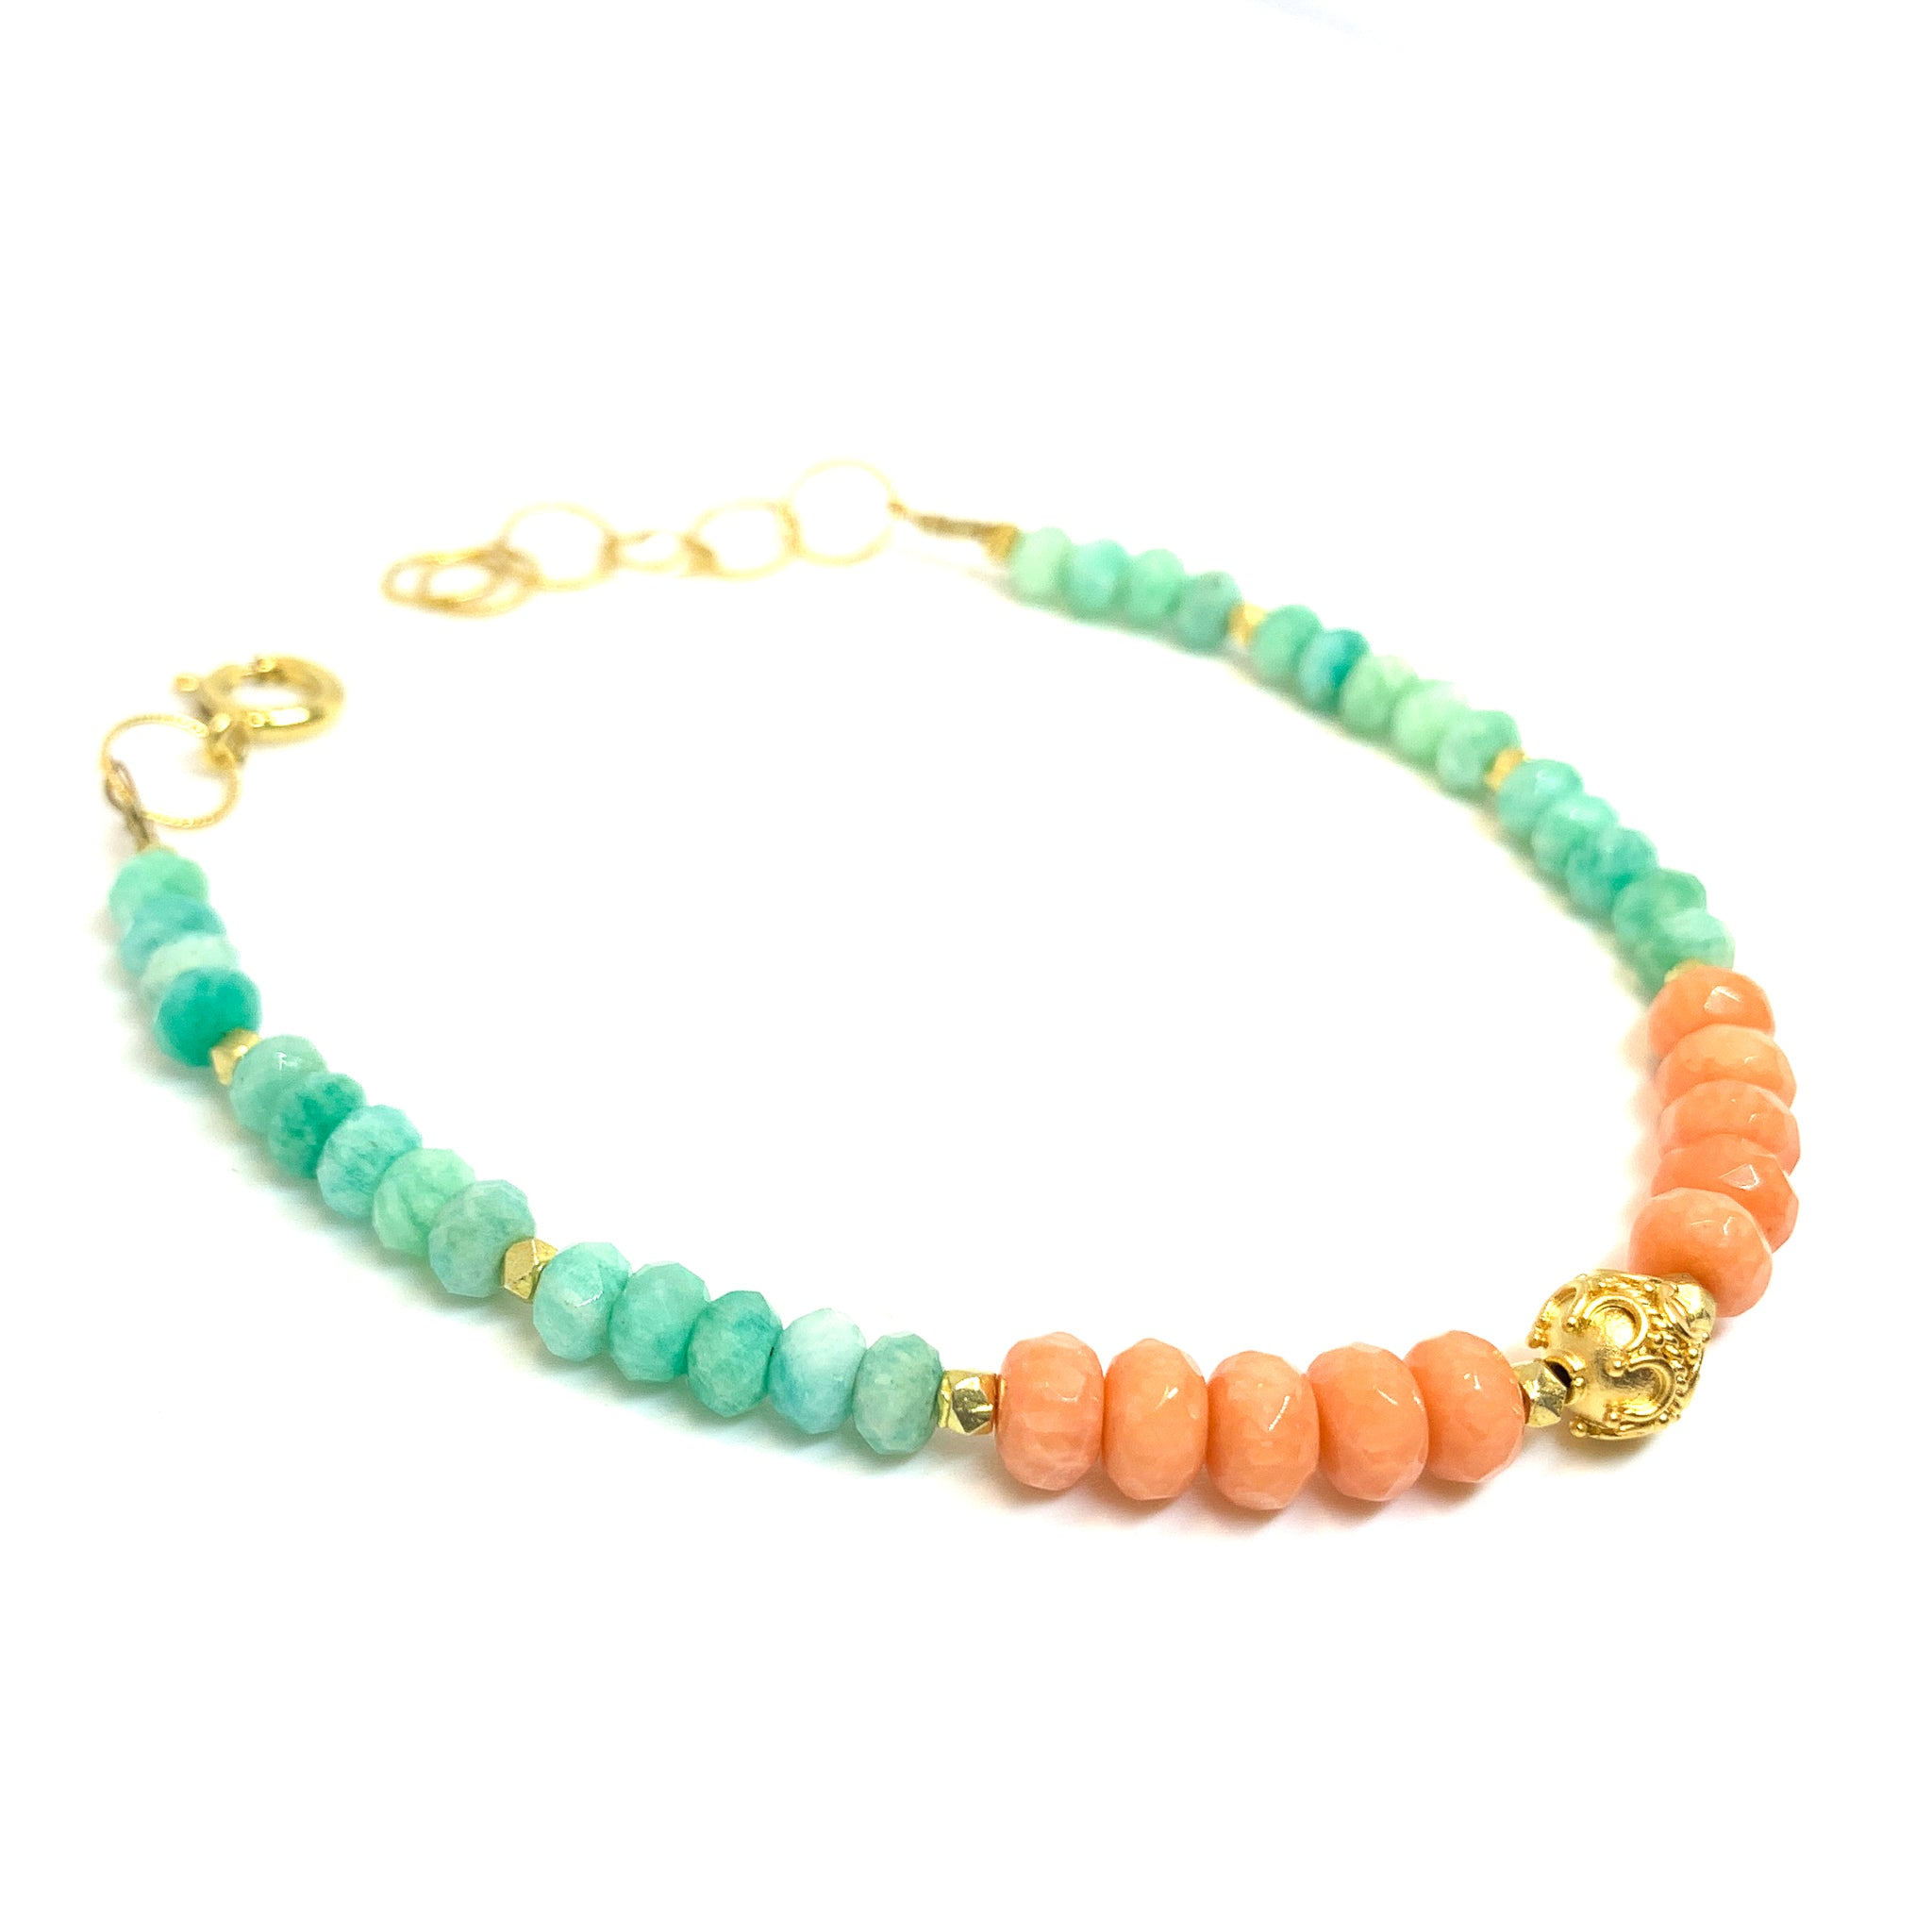 bracelet with facetted coral and amazonite , with 14 karat gold fill and vermeil bead, by eve black jewelry, Hawaii